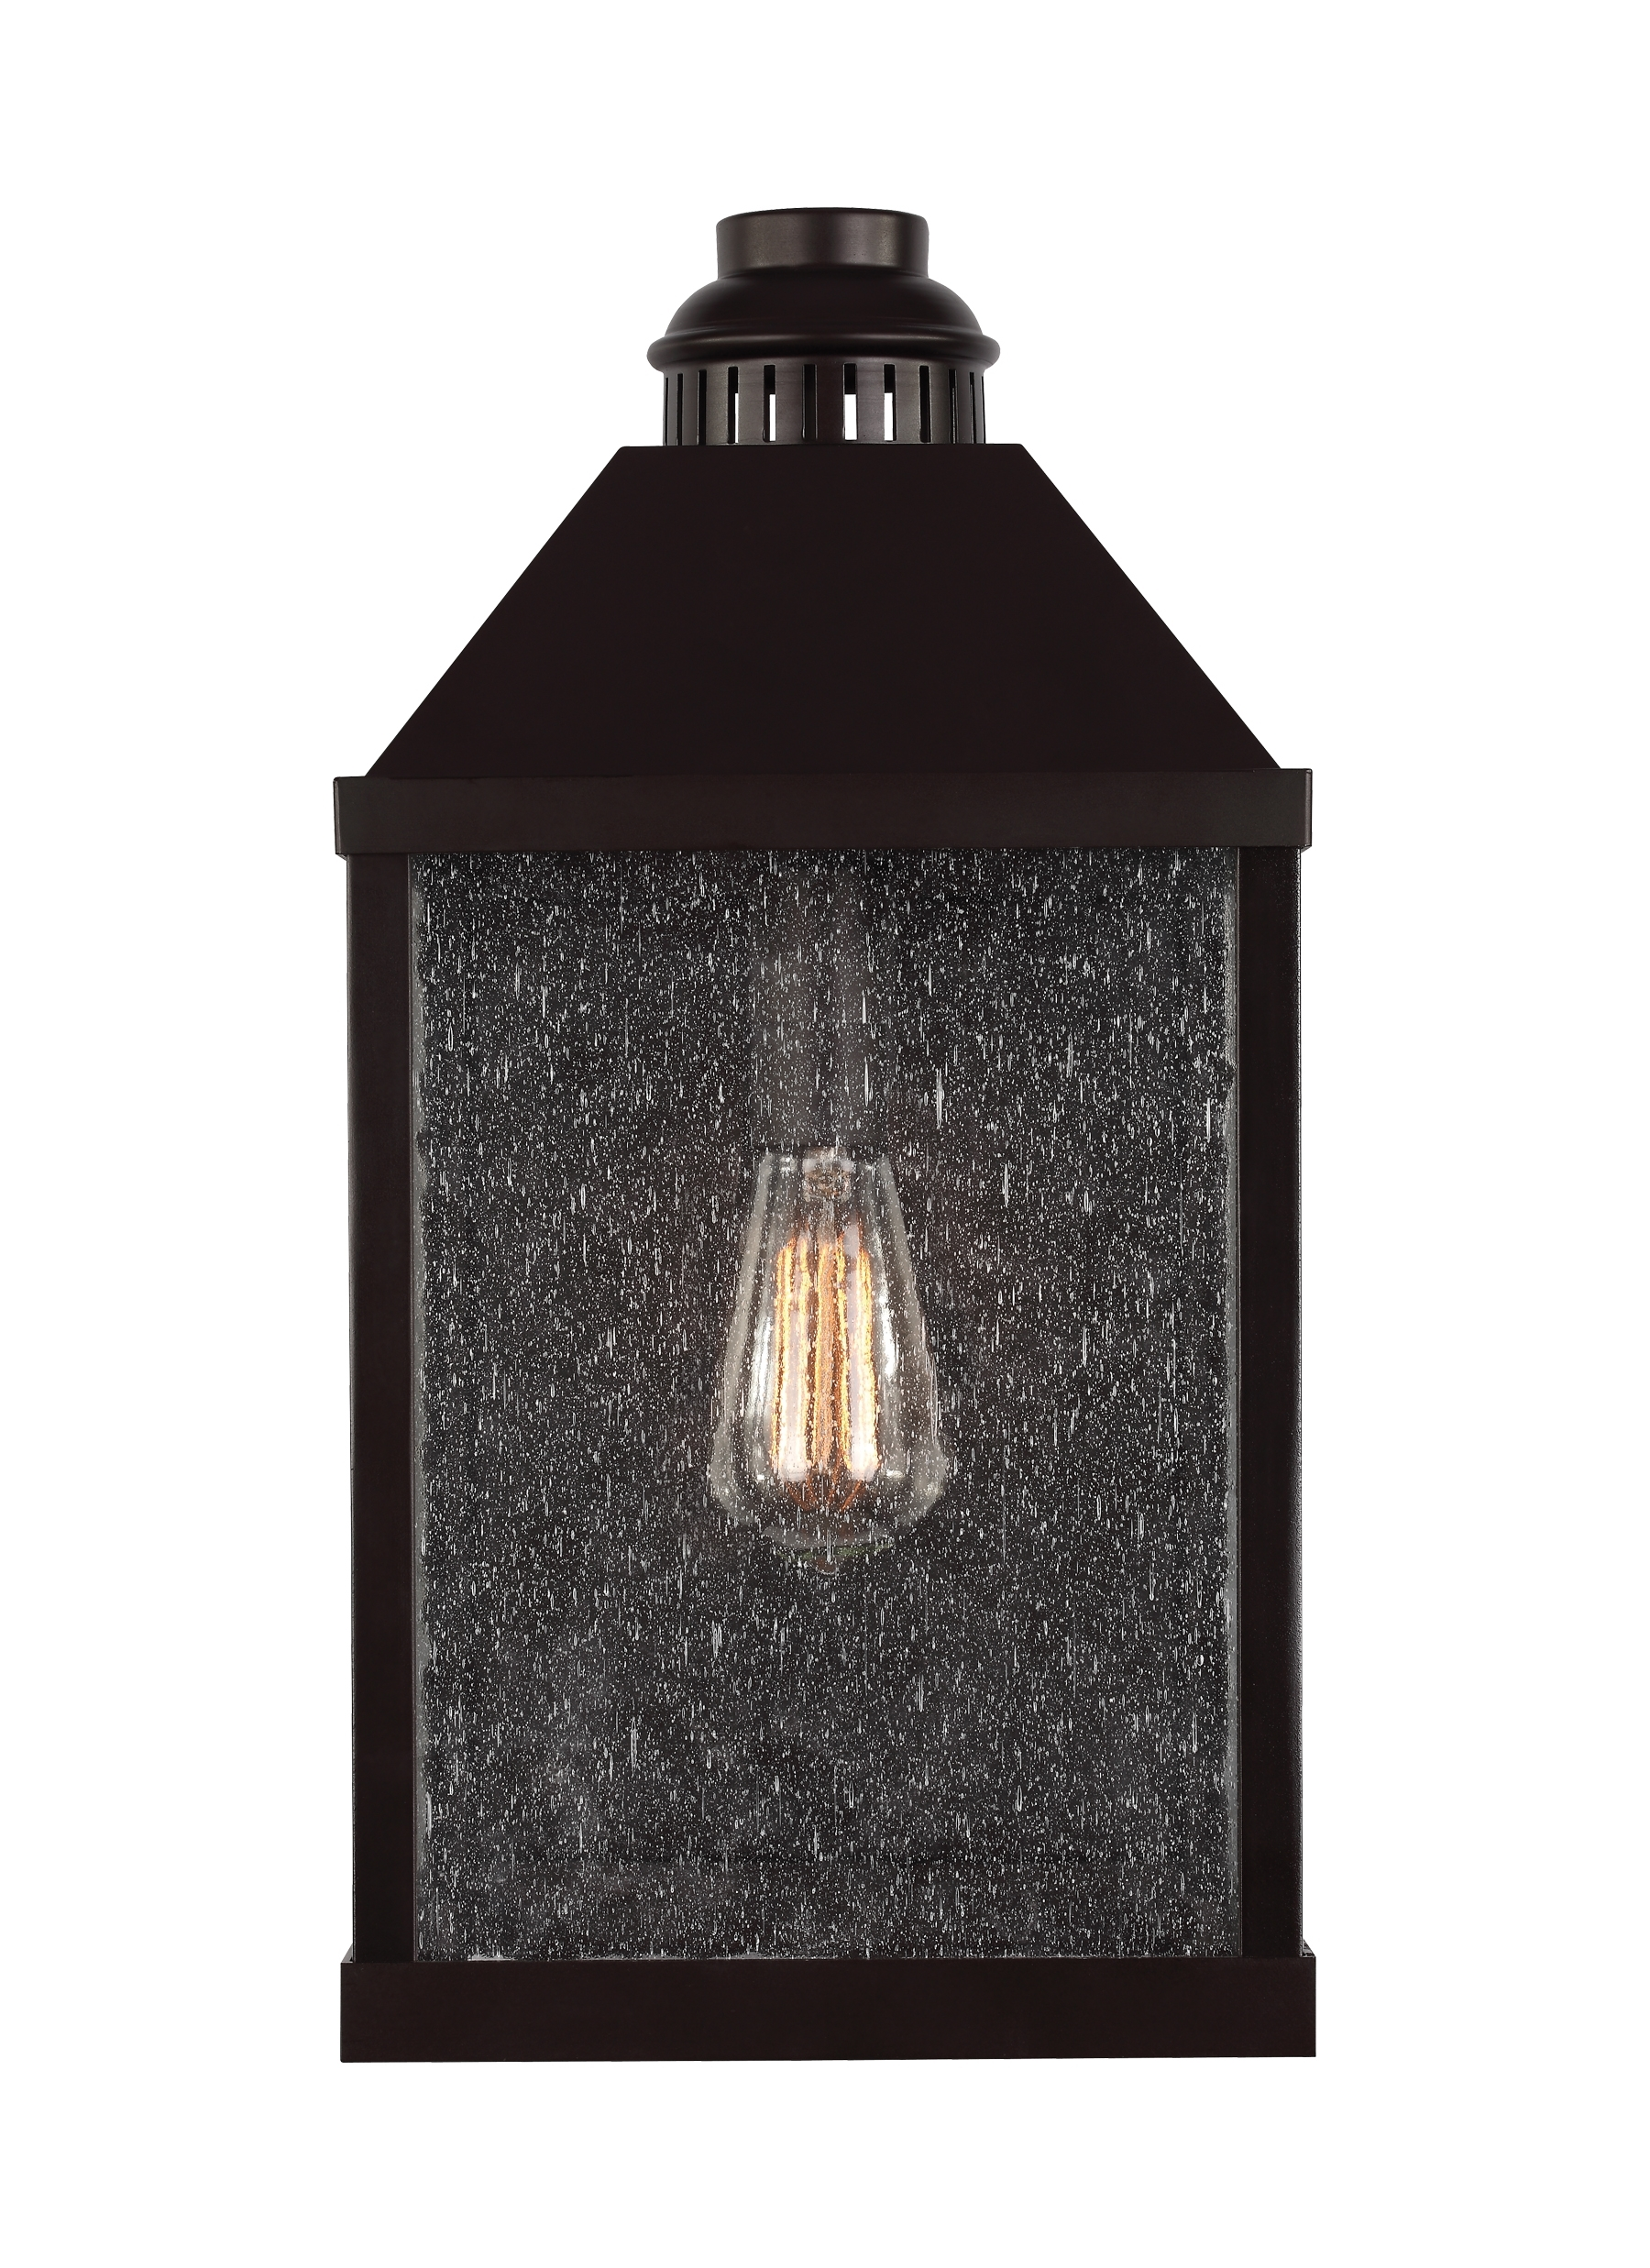 Rustic Outdoor Electric Lanterns With Well Known Light Fixtures Rustic Wall Sconce Fixture Lodge Style Sconces (View 11 of 20)